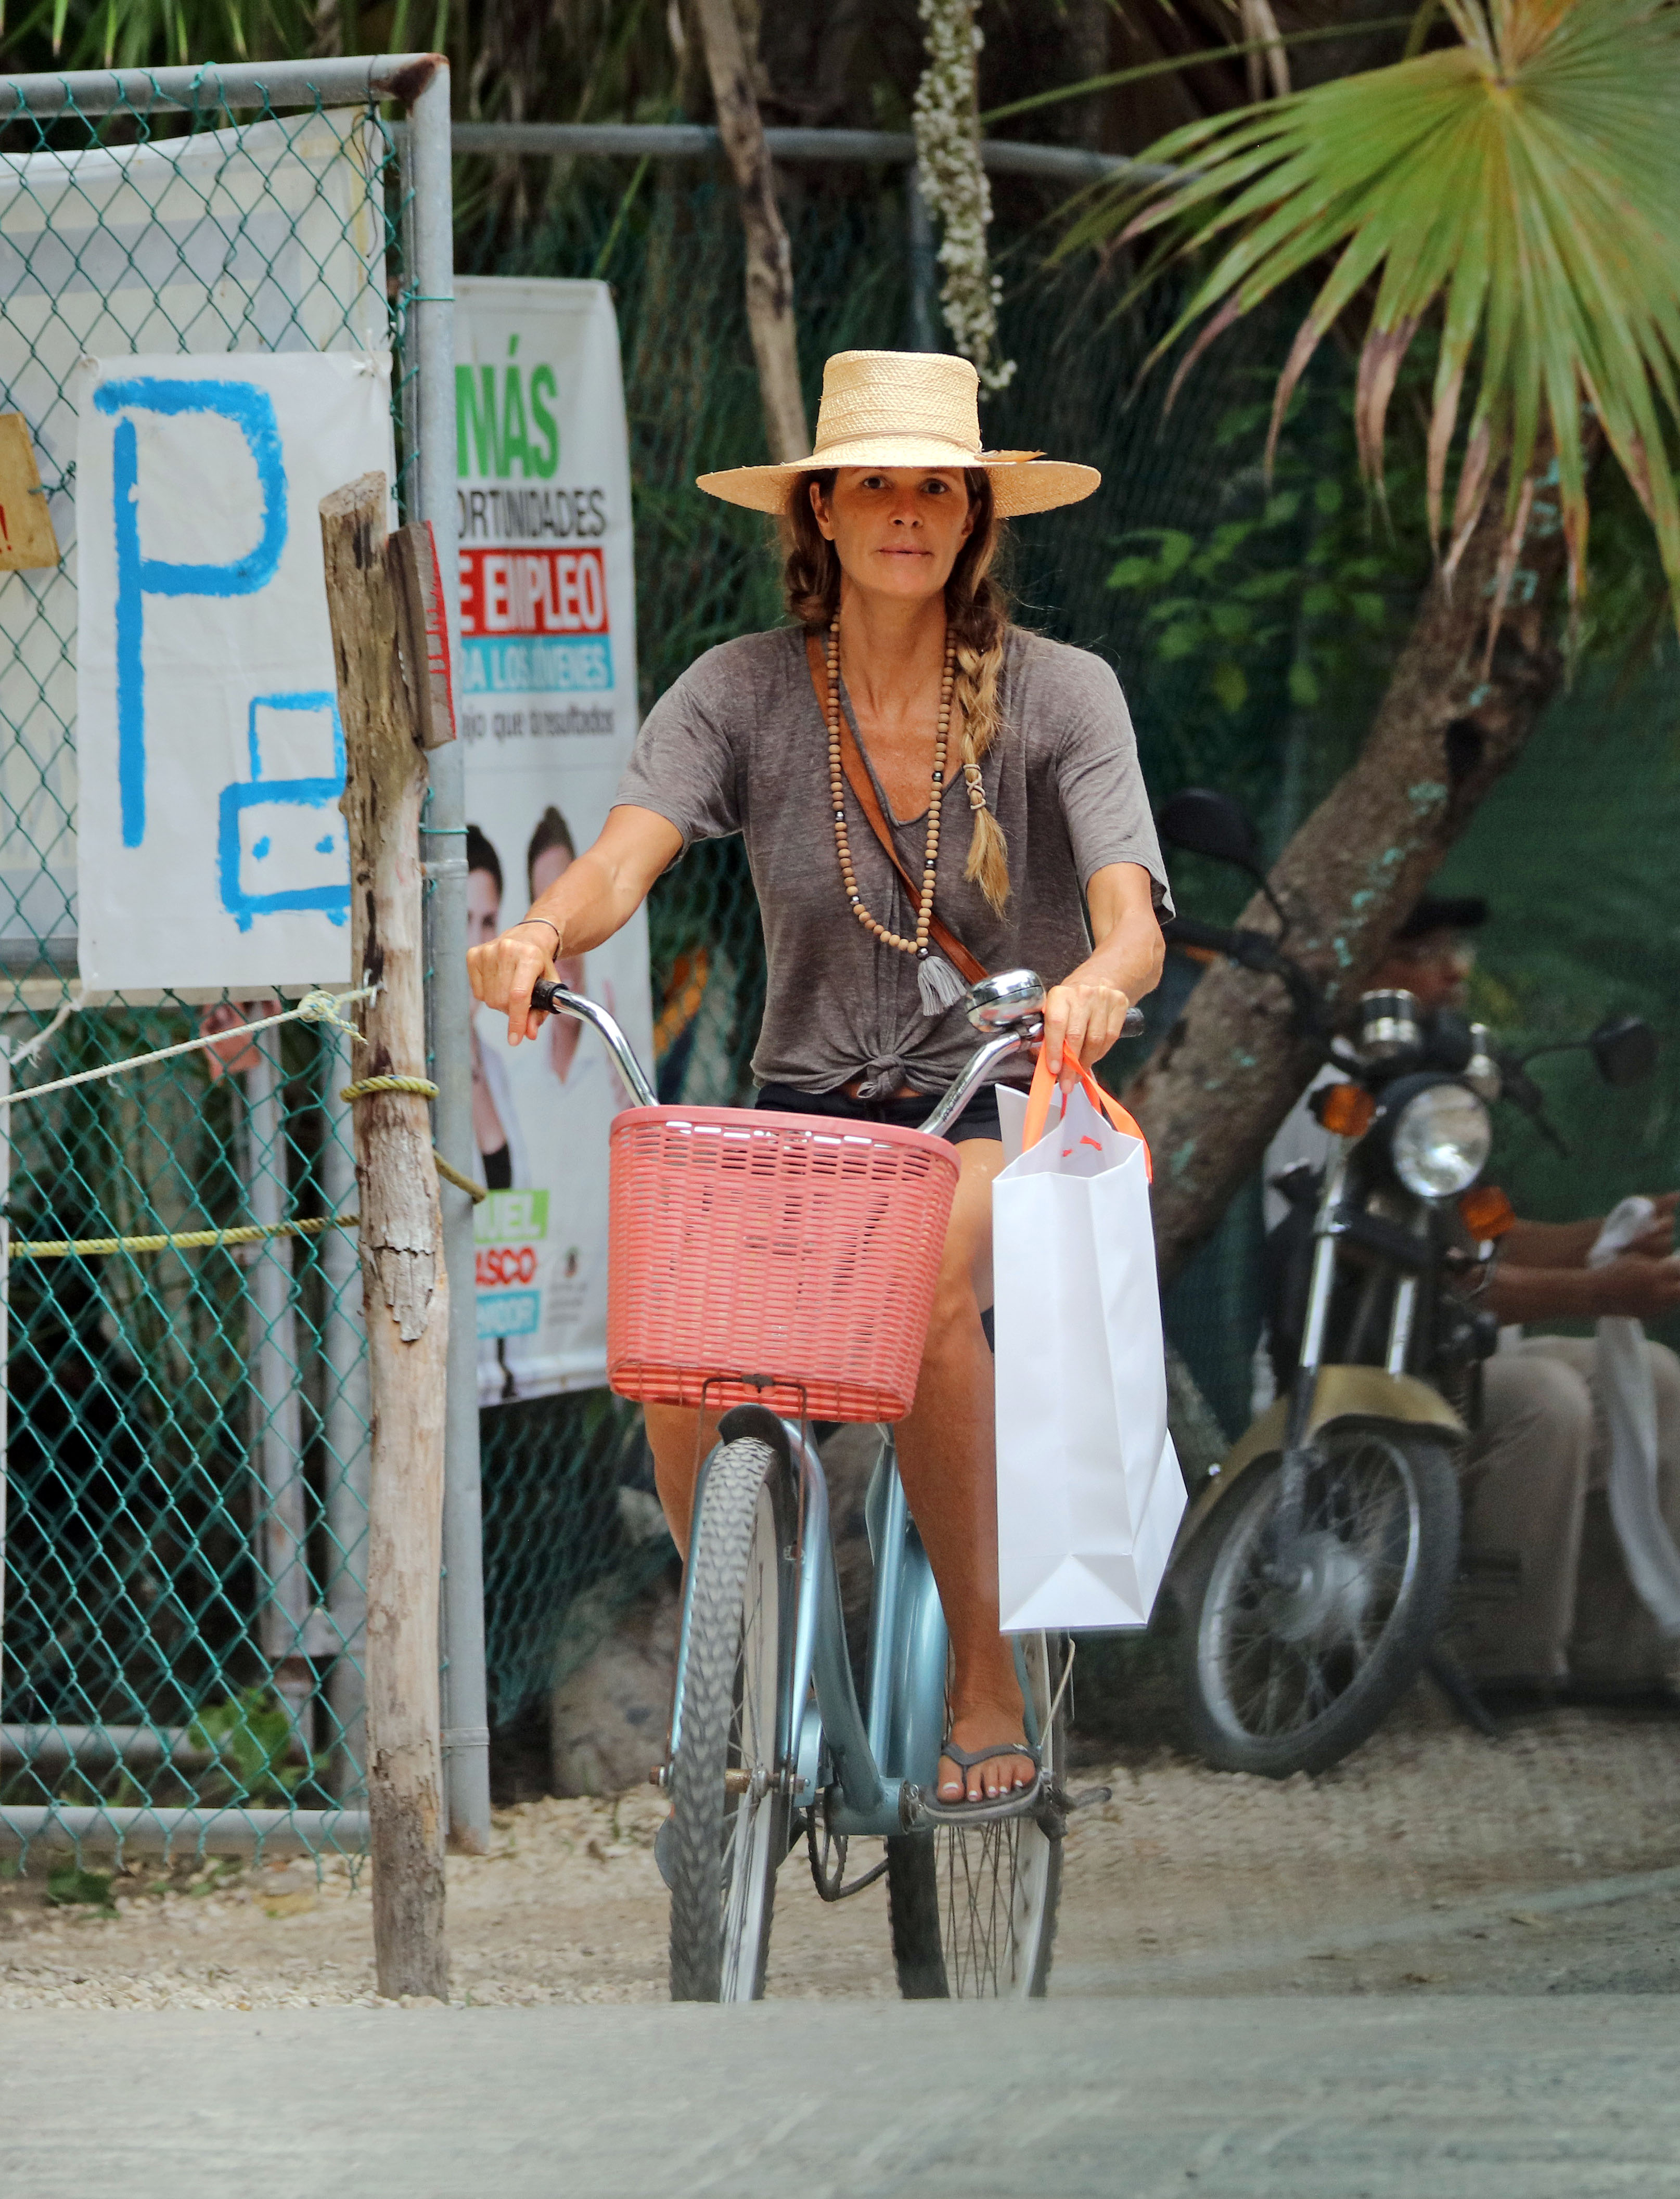 EXCLUSIVE: Elle Macpherson is seen enjoying a bike ride as she enjoys Holidays in Tulum Mexico.